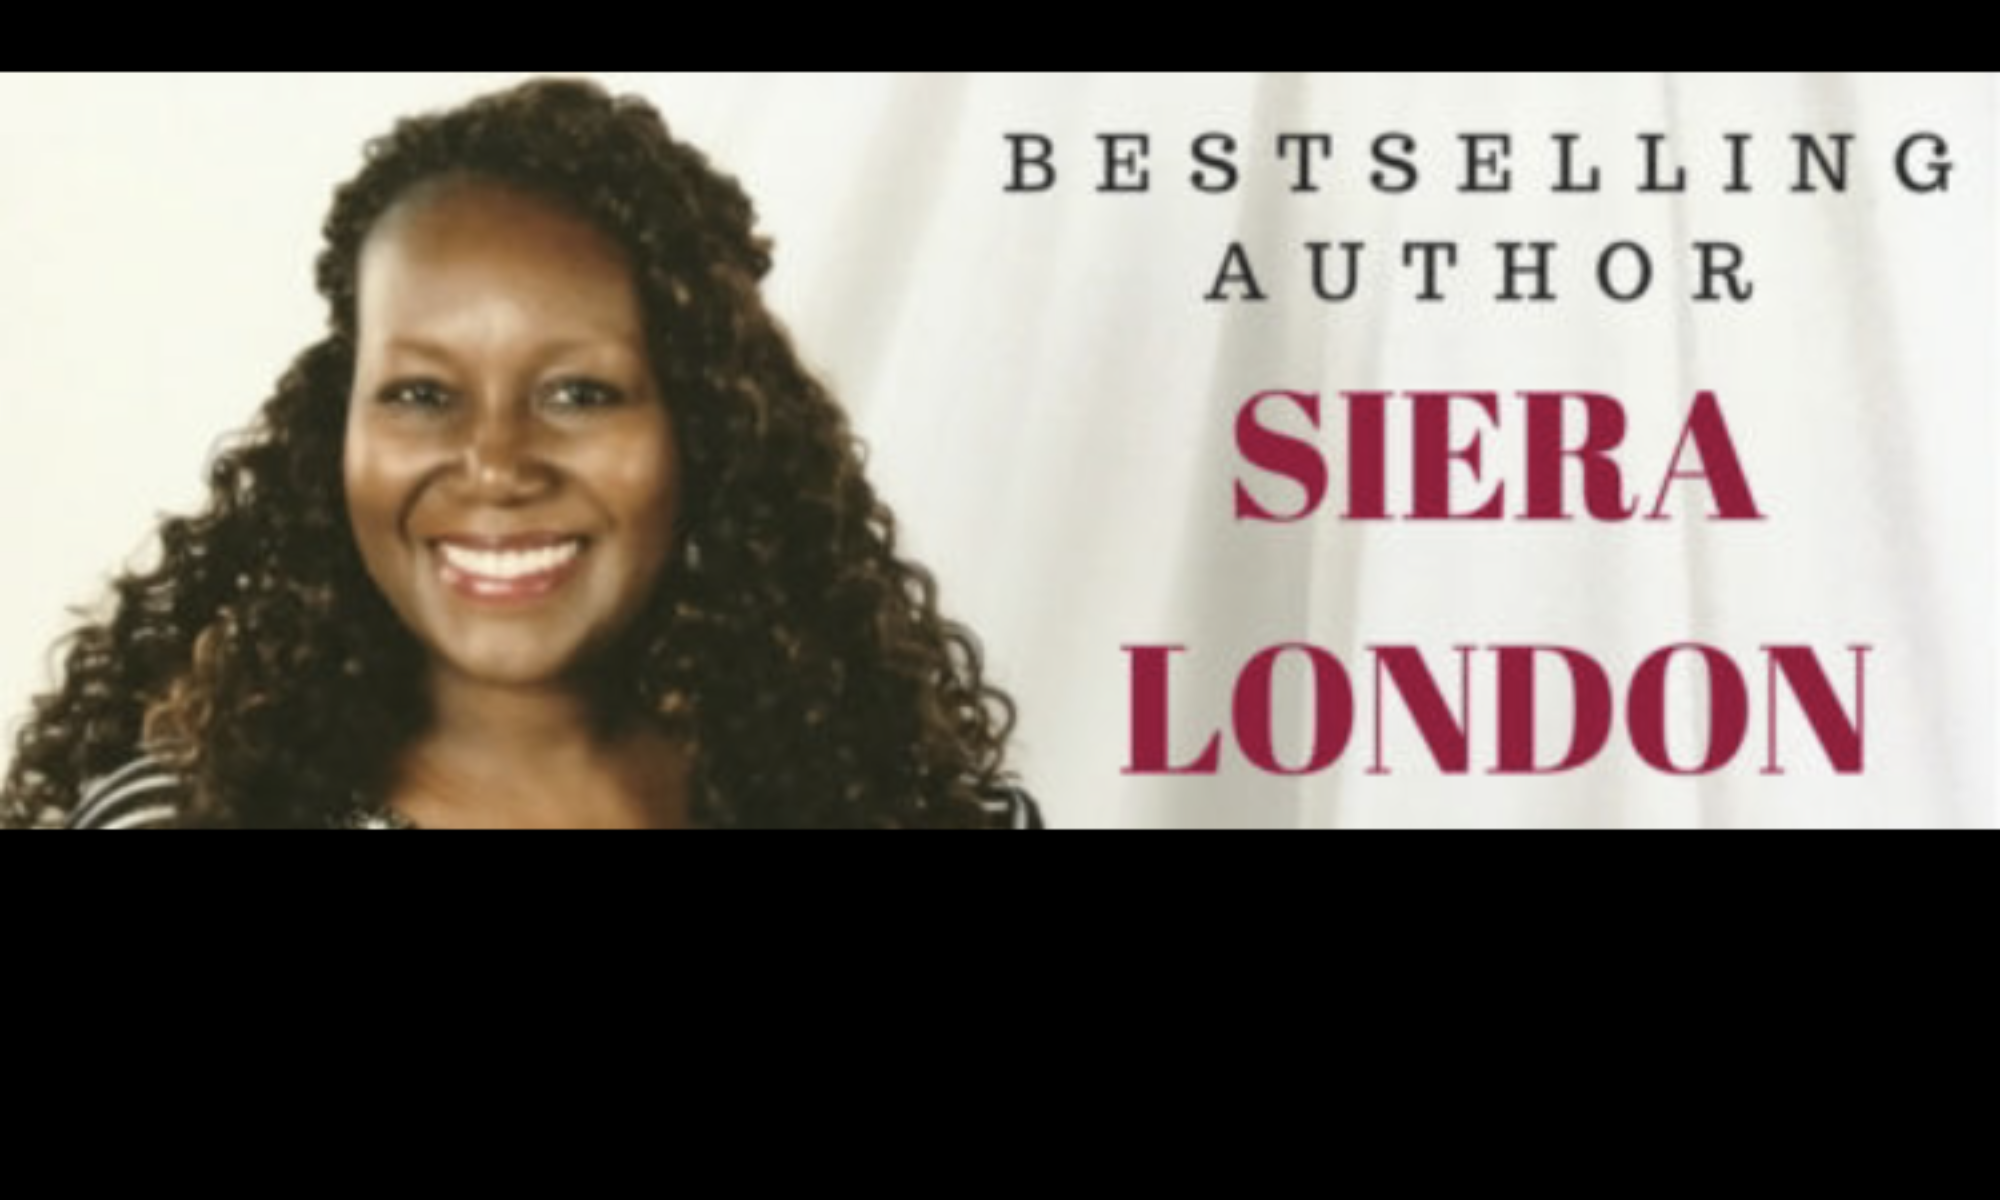 SIERA LONDON BOOKS